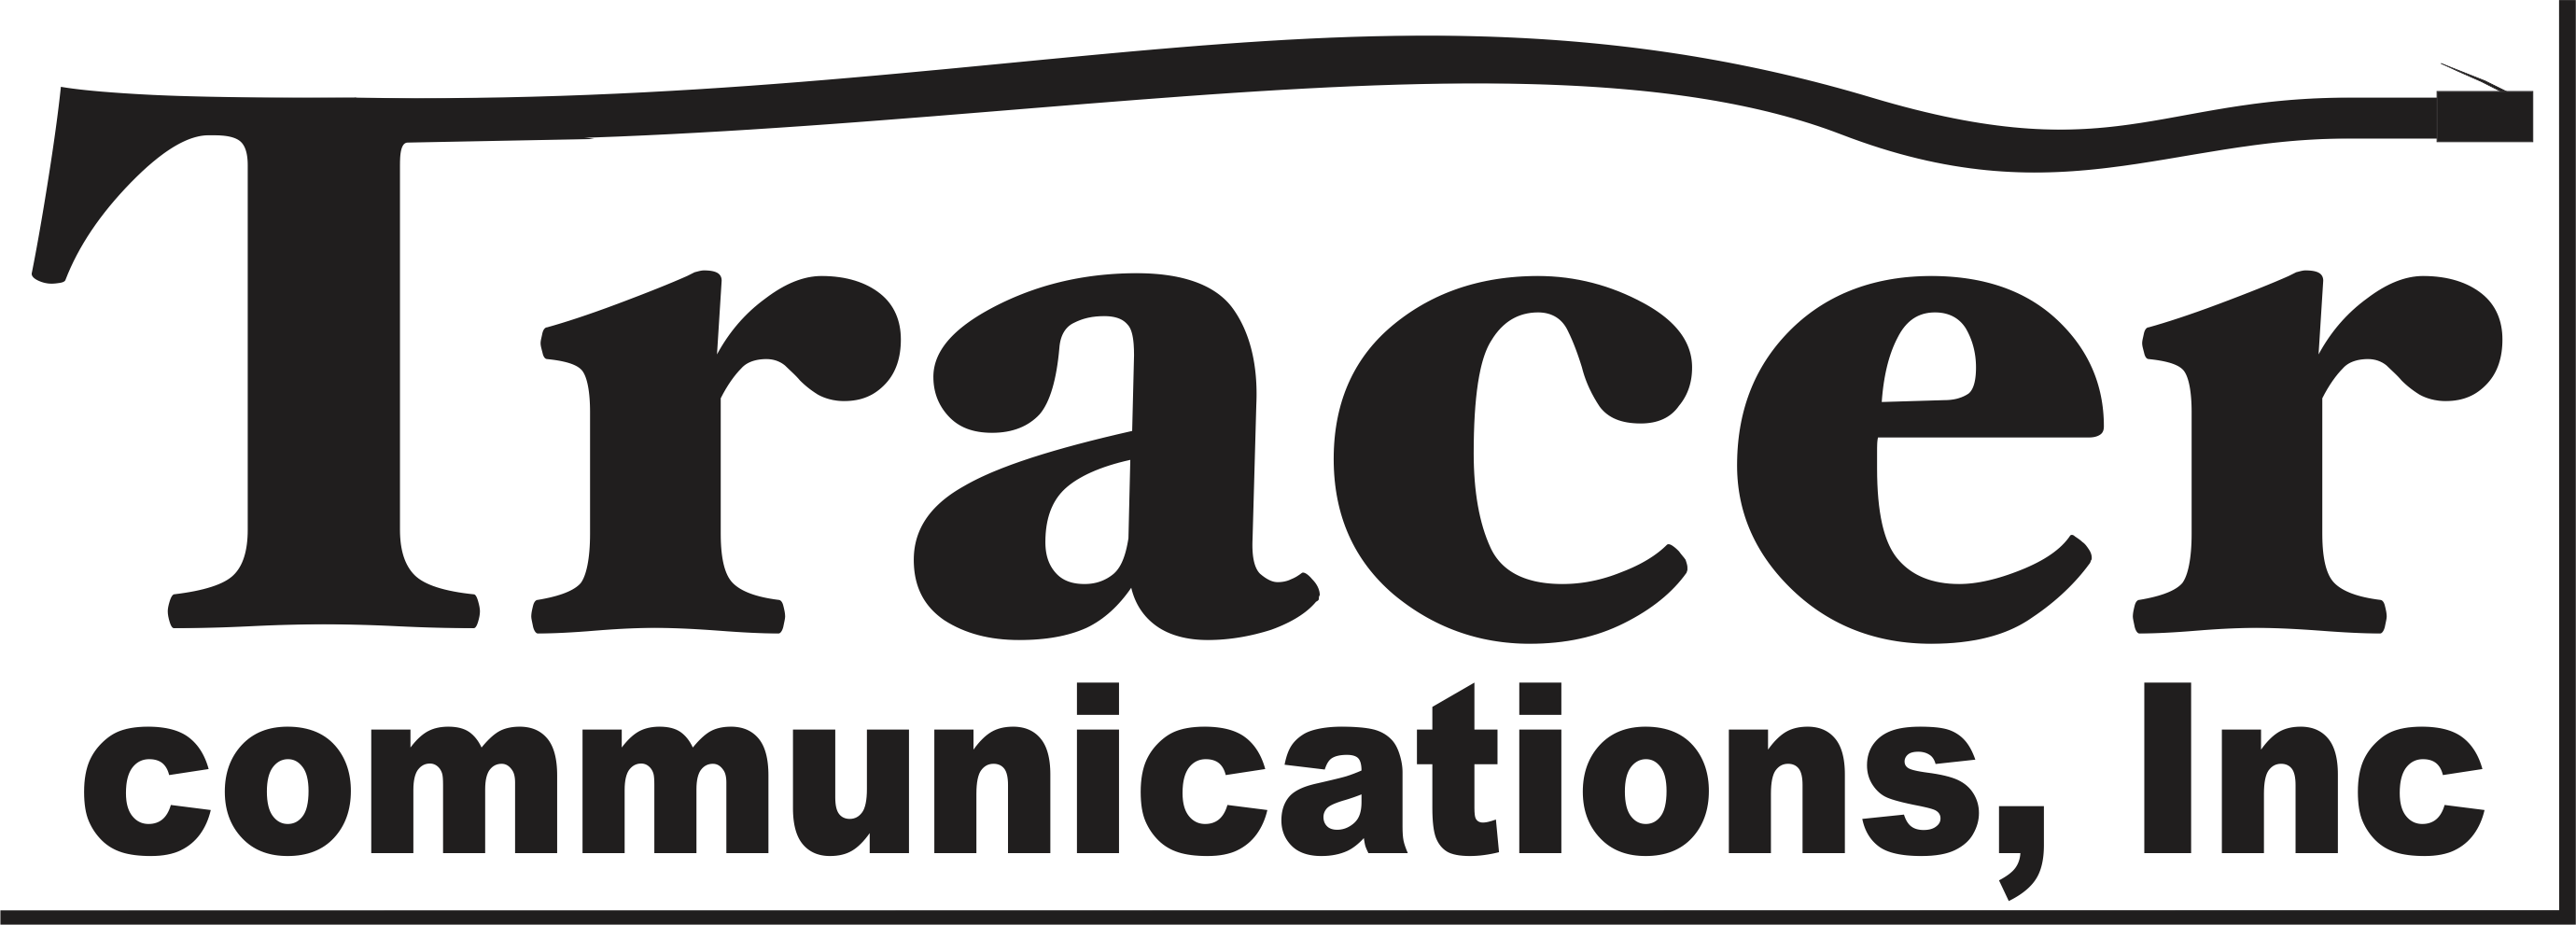 Tracer Communications